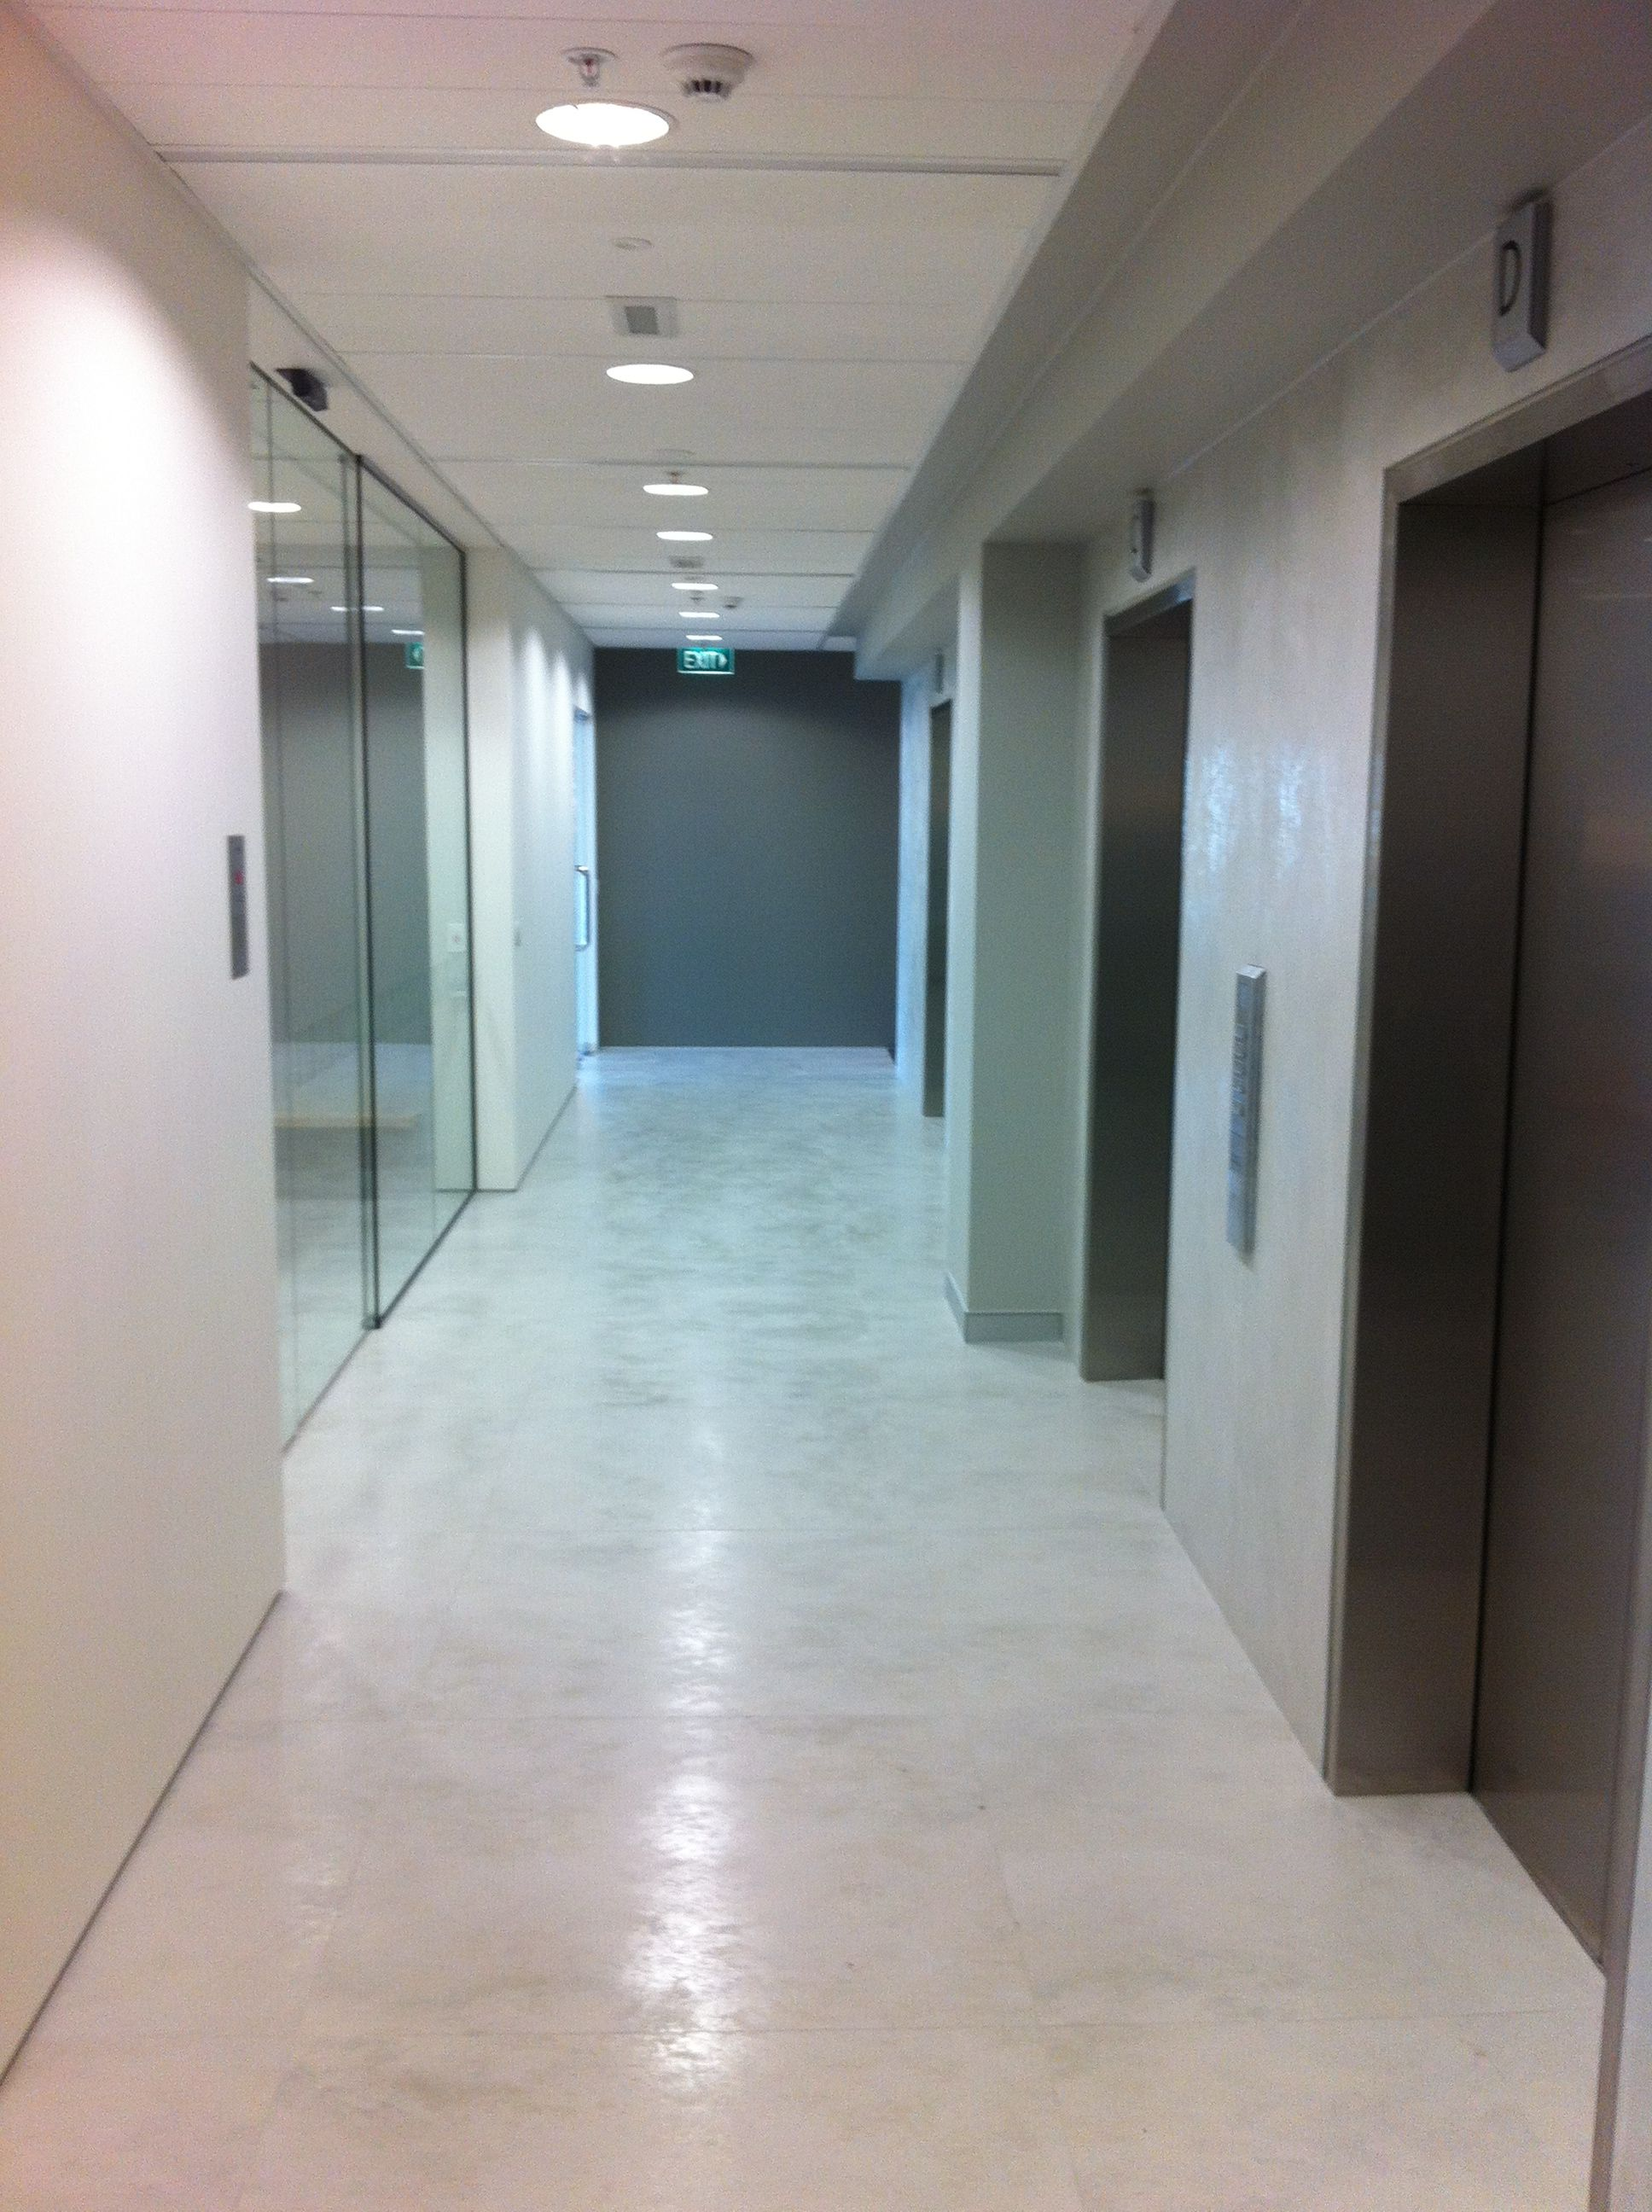 Laminam - Thin ceramic tiles for floors, walls and exteriors ...